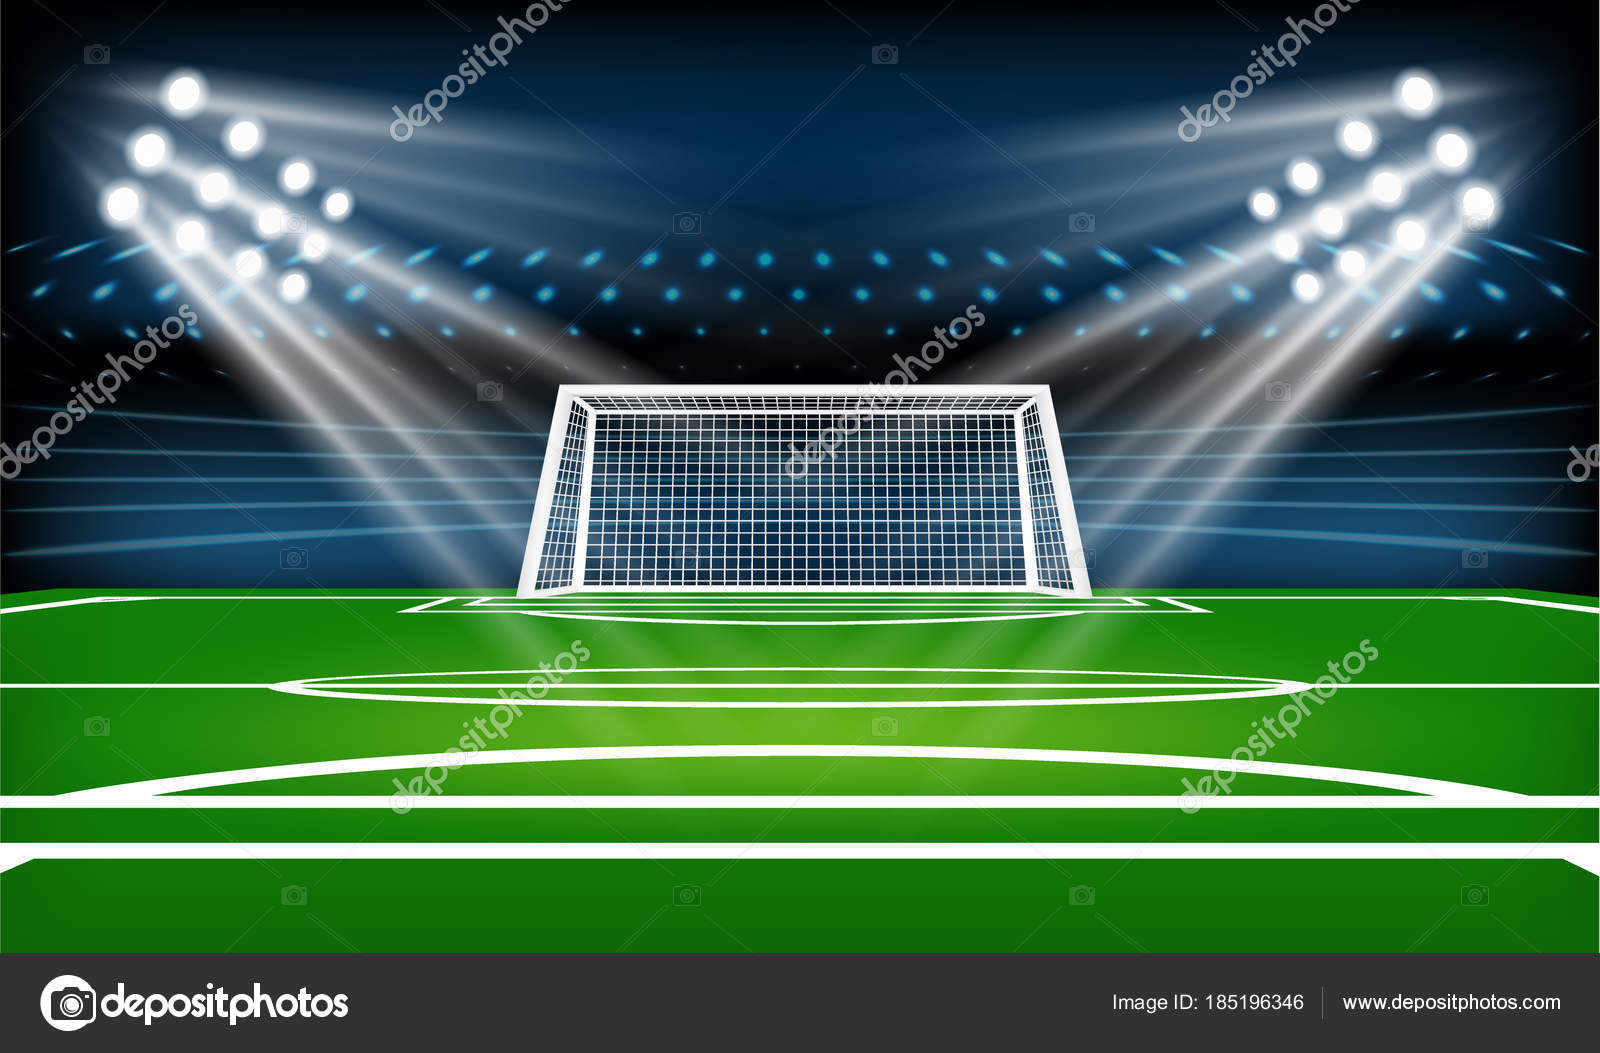 Depositphotos Stock Illustration Football Soccer Playing Field Poster Tournament